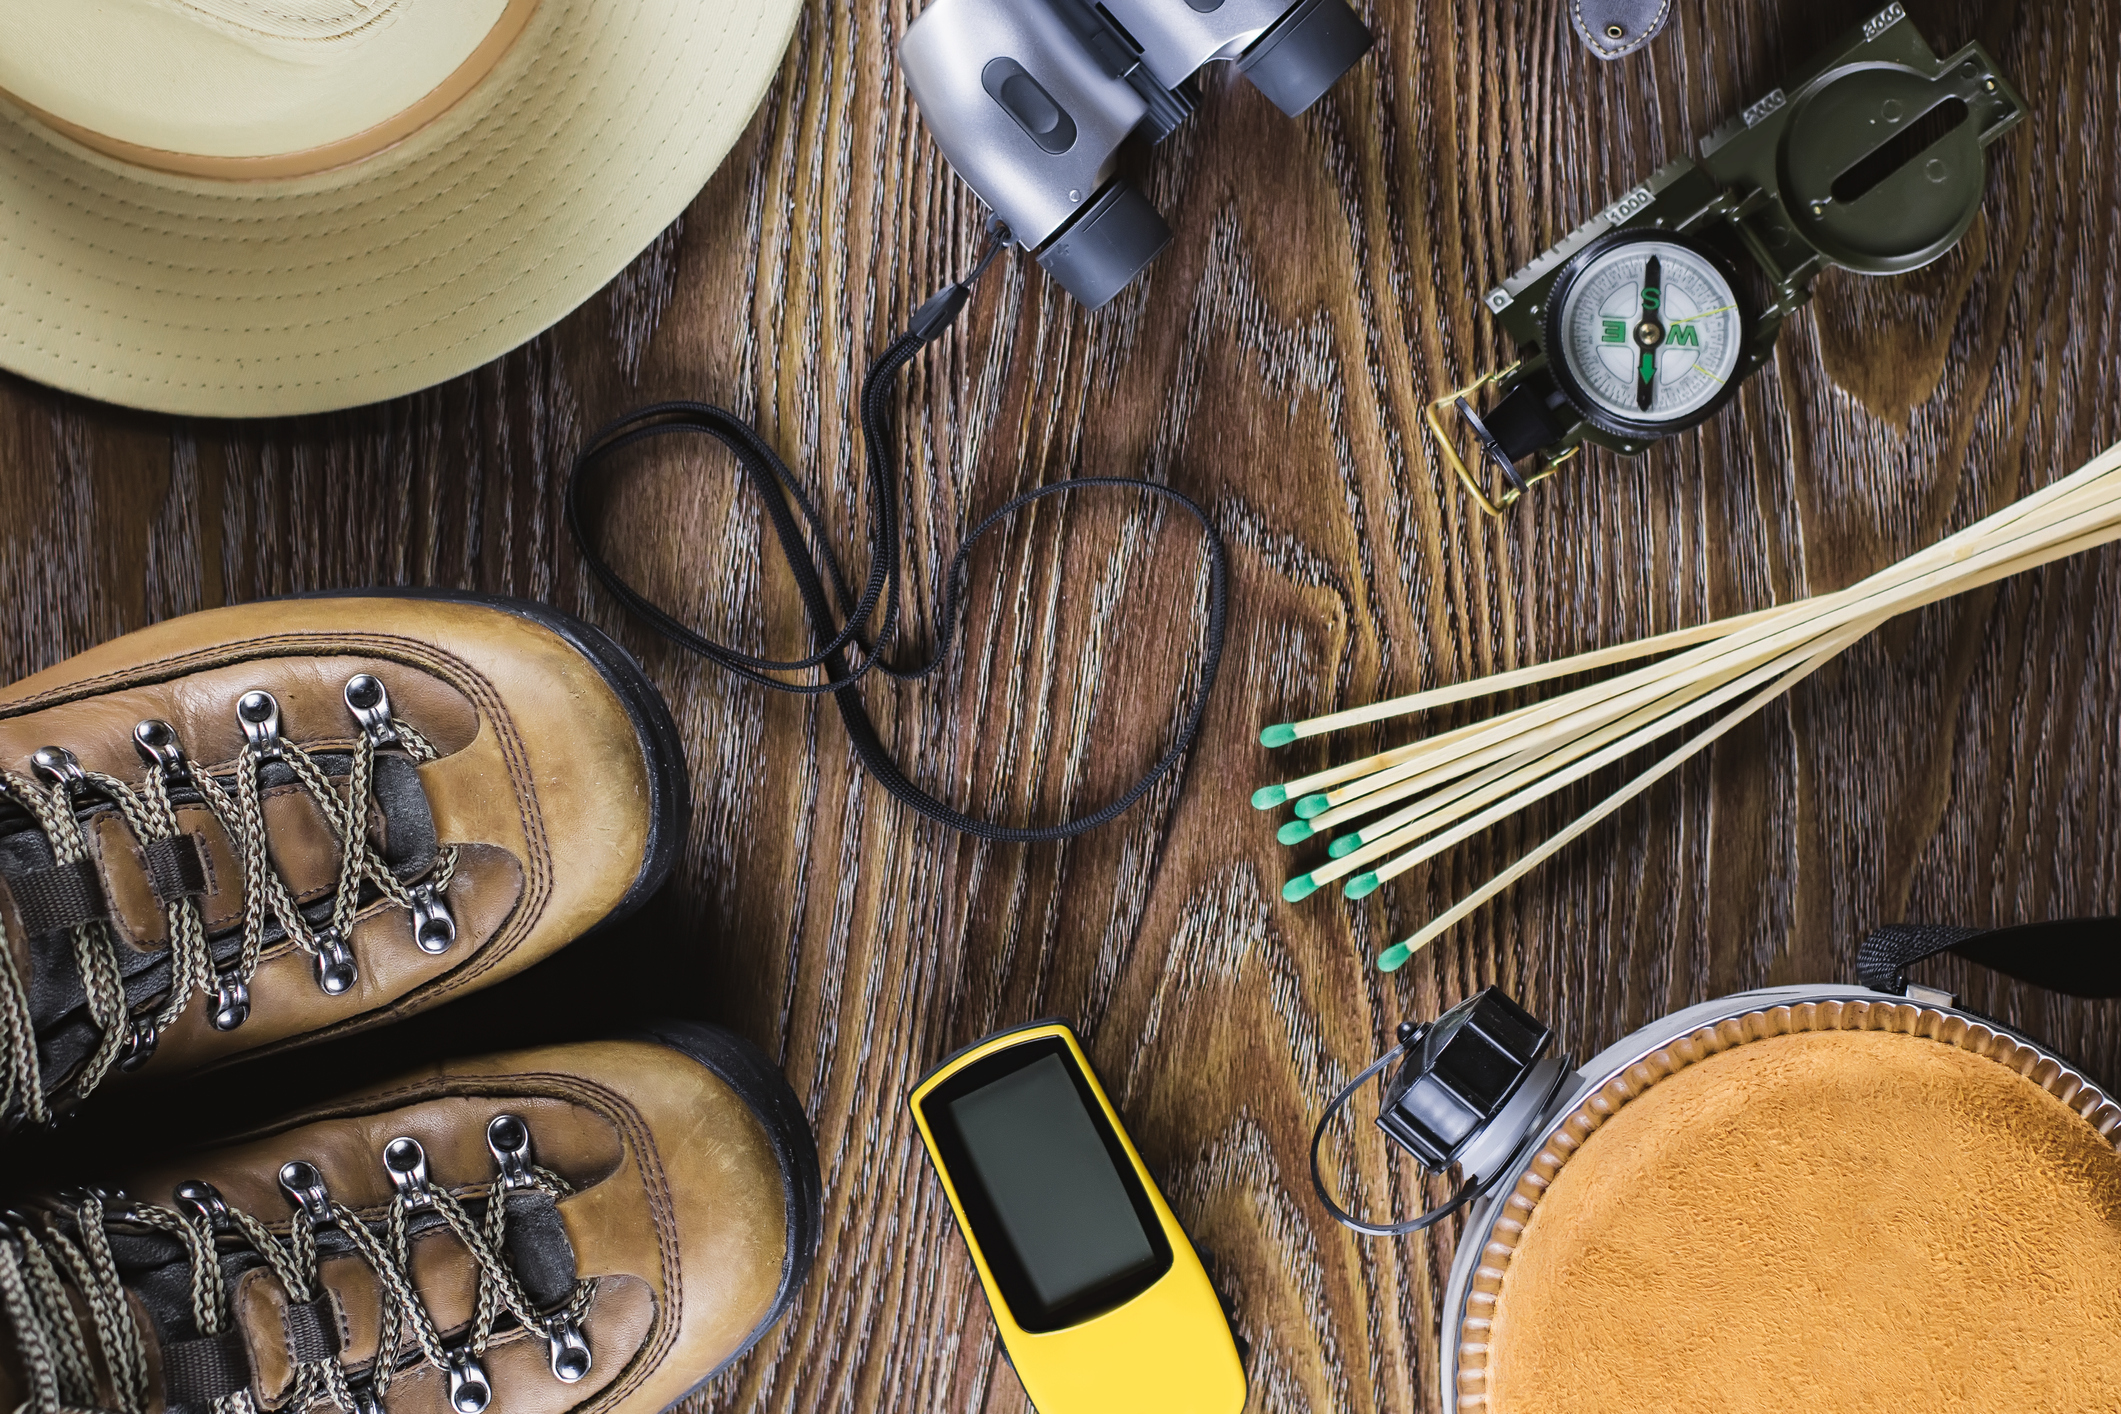 hiking equipment on wood background